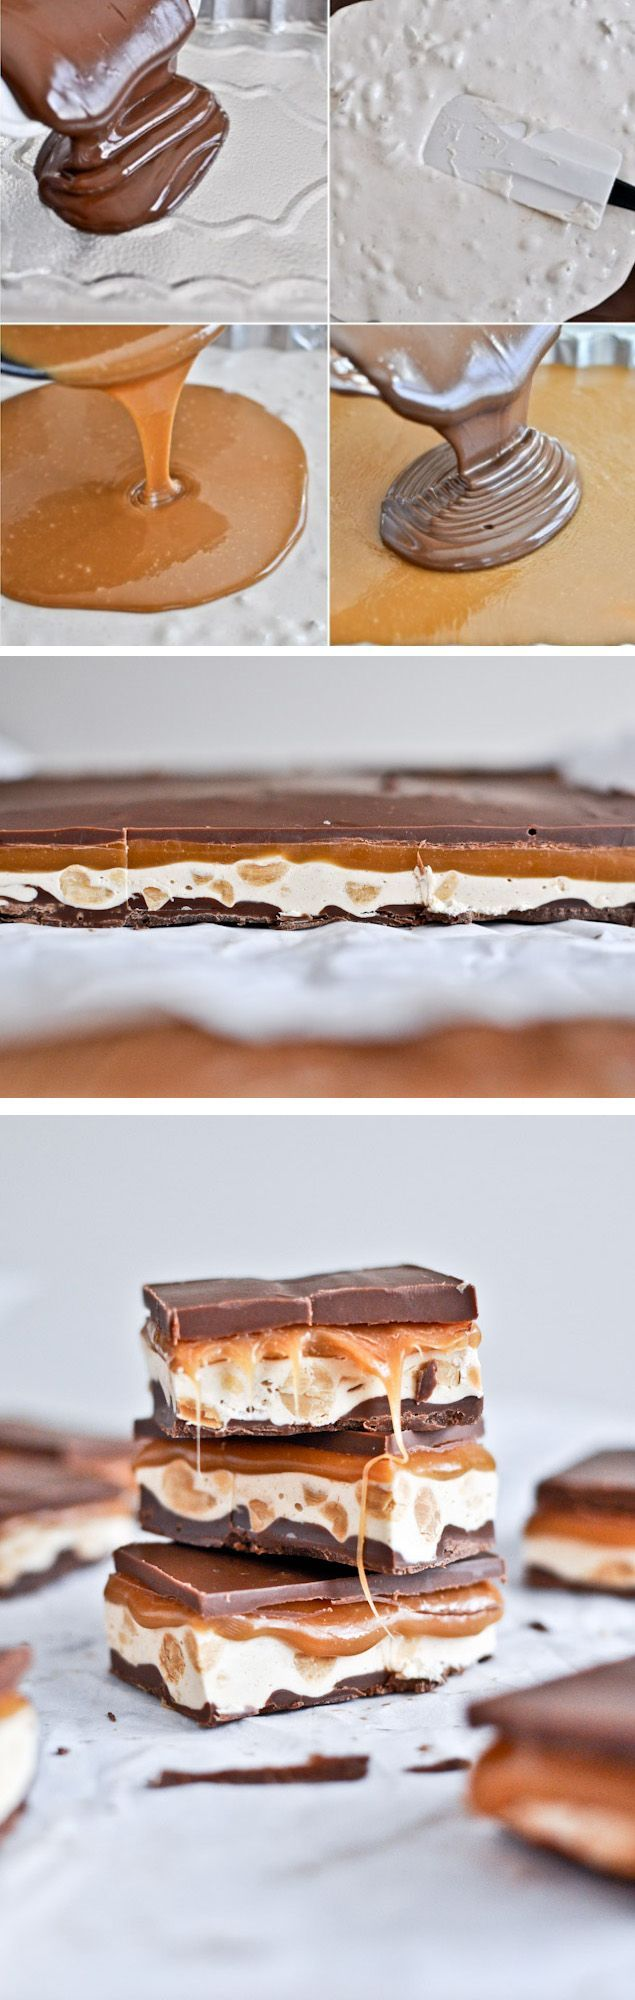 homemade snickers bars | Tastefulonly